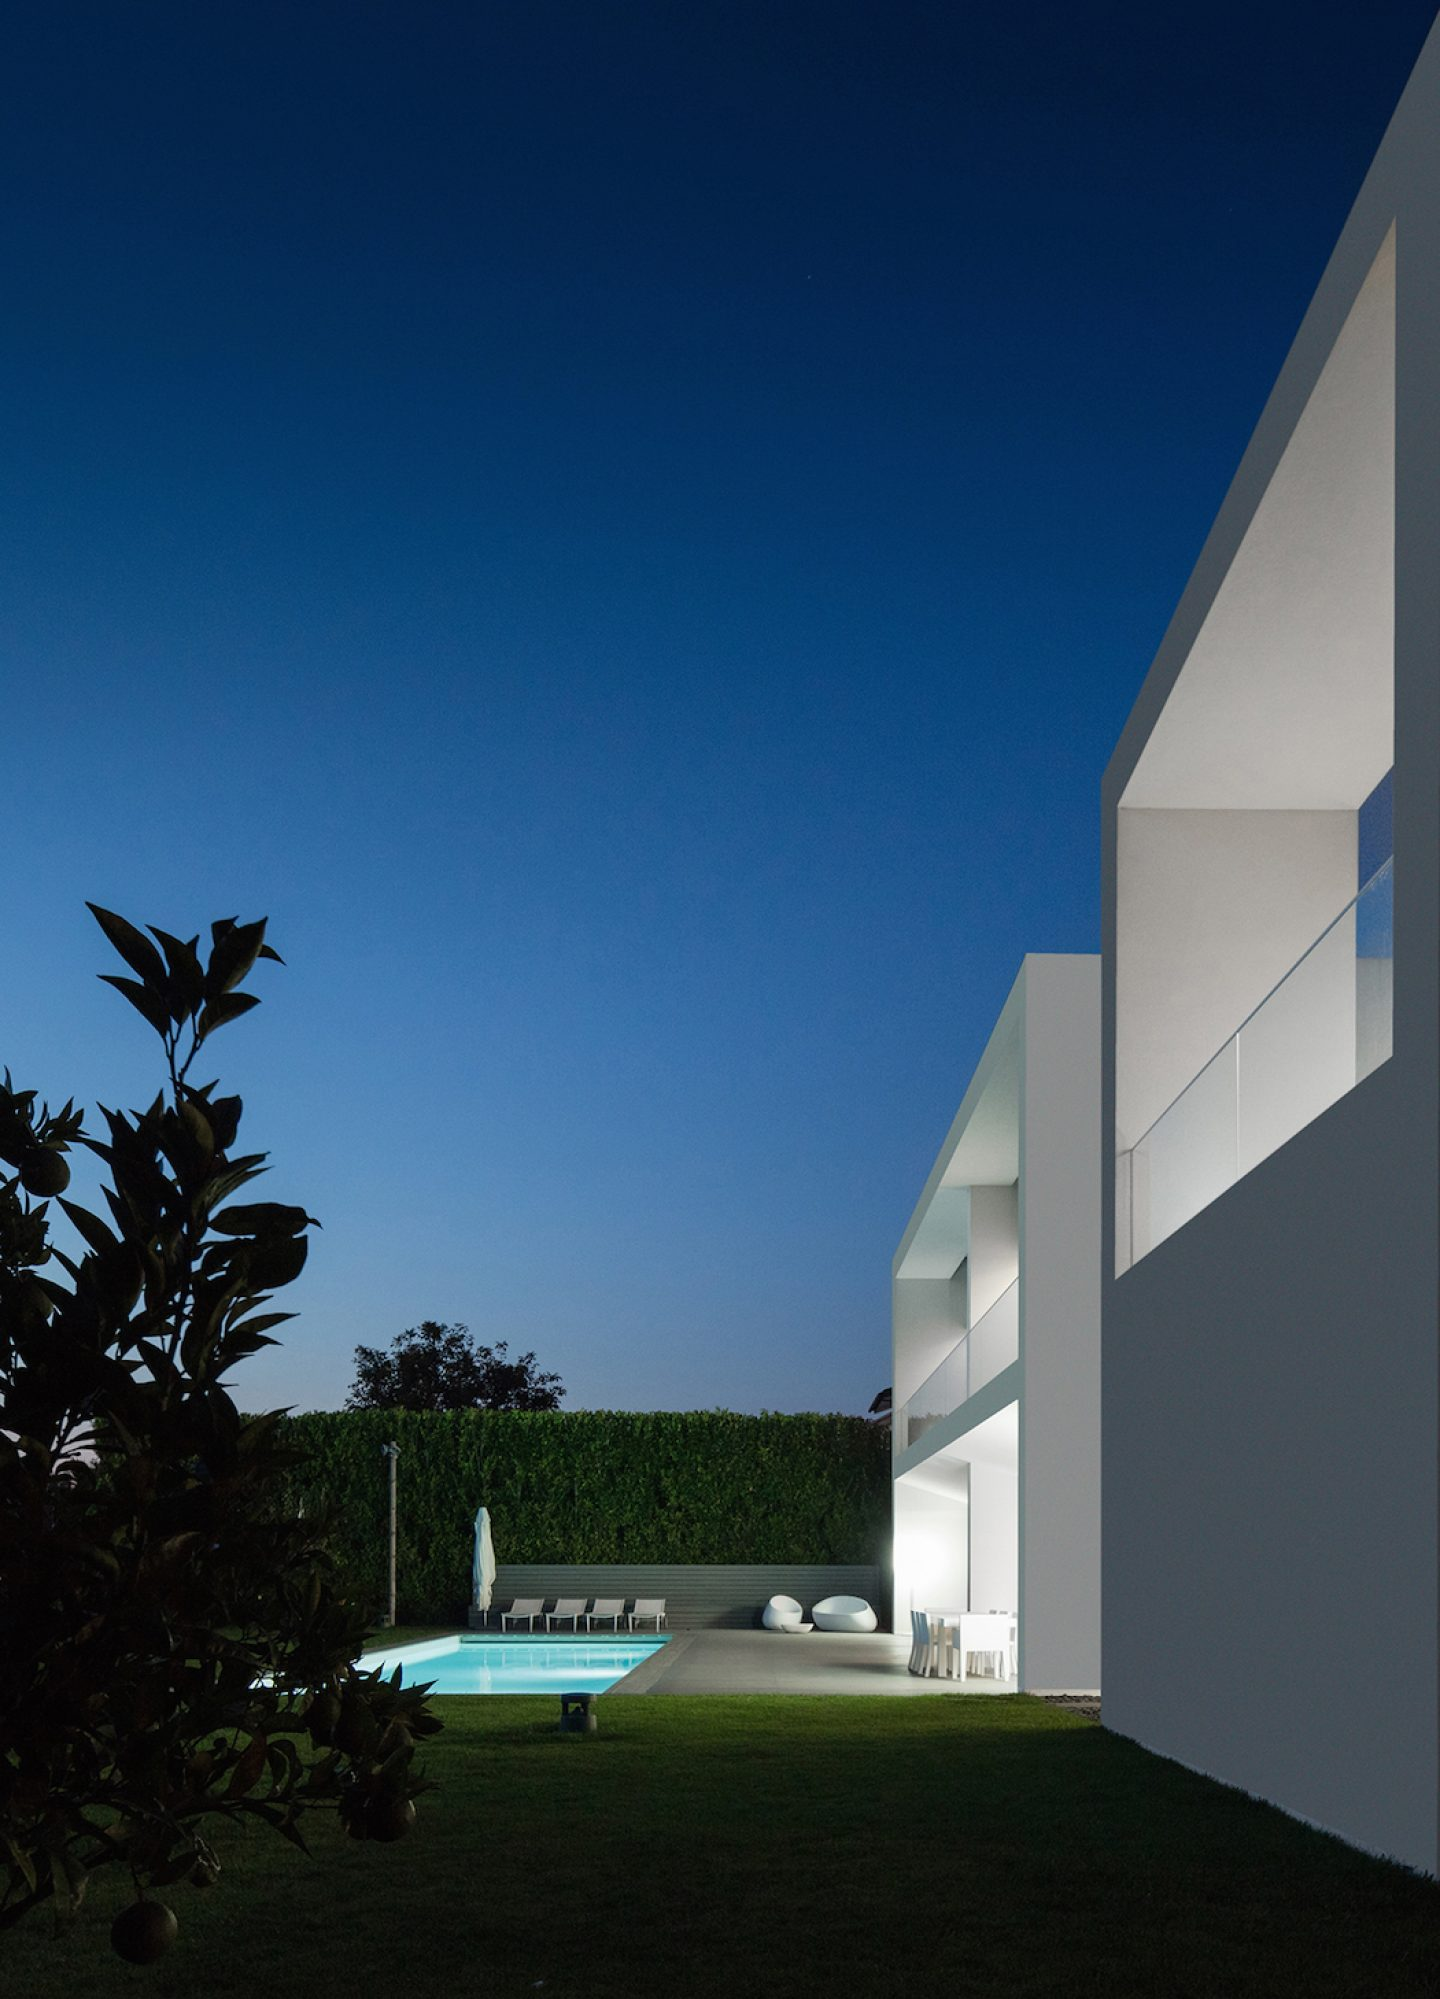 Vila do Conde House - Raulino Arquitecto (03)